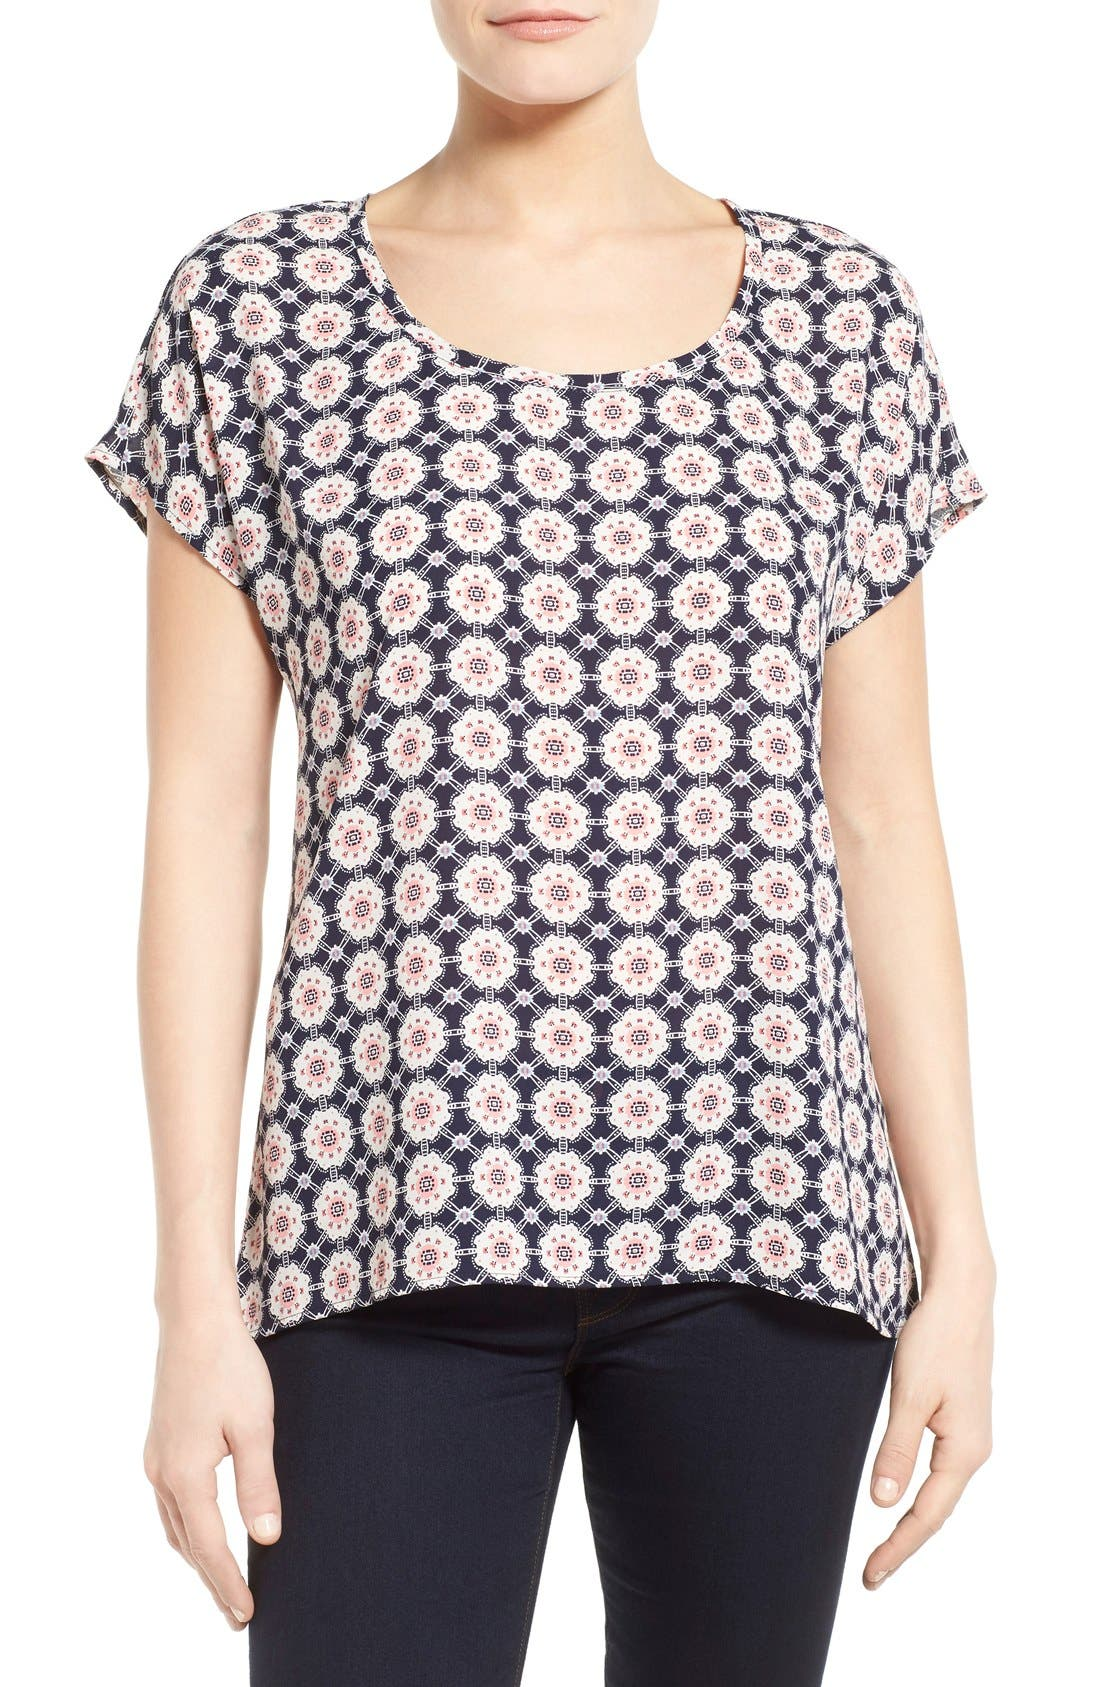 Main Image - Pleione Scoop Neck Short Sleeve Blouse (Regular & Petite)